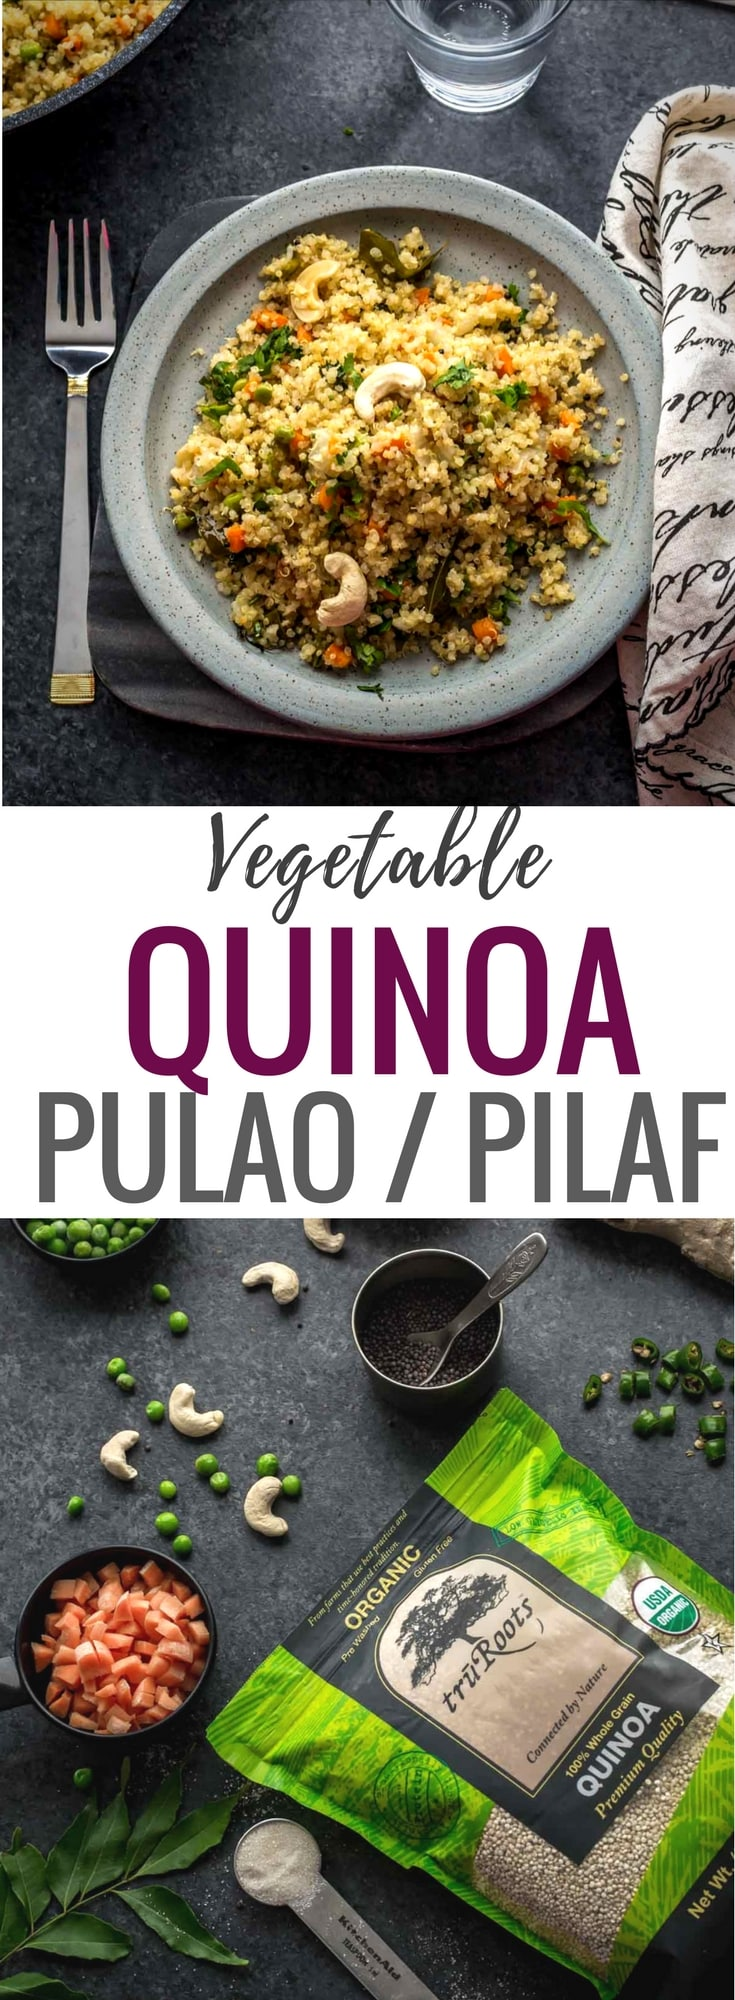 Quinoa pulao recipe with vegetables - Have you tried Vegetable Quinoa Pulao? Just like vegetable pulao, it is delicious and is a great way to work more veggies into your meals with quinoa – a healthier substitute for rice. This post is sponsored by truRoots. #ad #quinoa #pulao #Indiancuisine #healthyindianrecipes #indianvegetarianrecipes #ethniccuisine #worldcuisine #indianfood